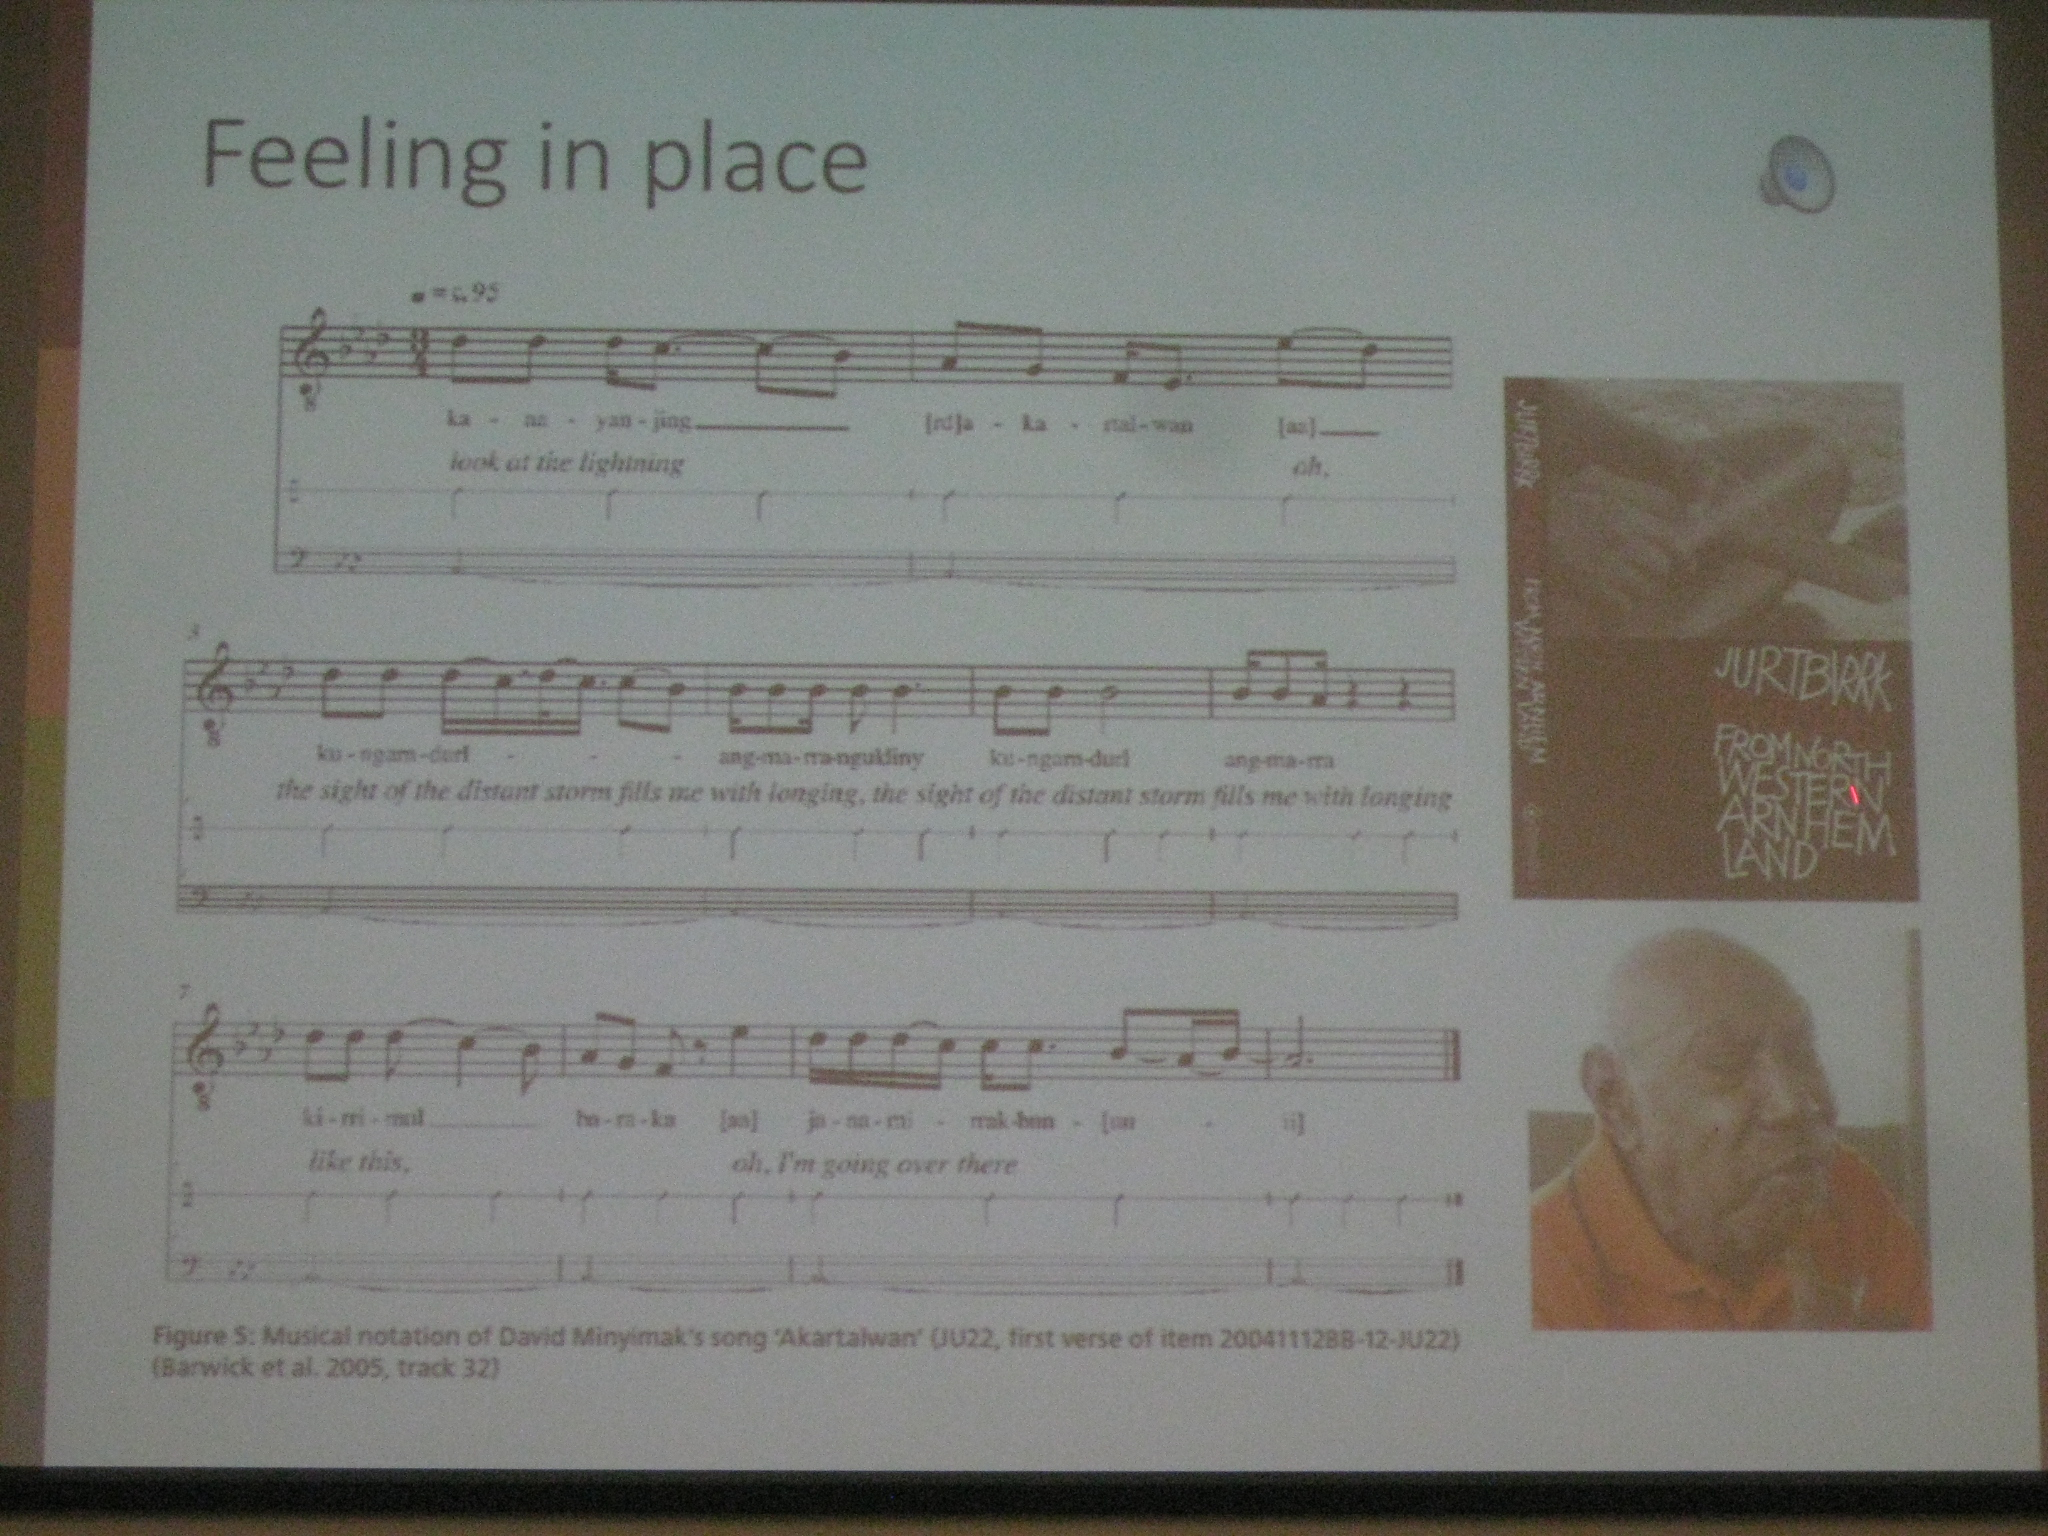 Waving to the other side: language of poetry in indigenous Australian song Nick Evans University of Melbourne 2018 feeling in place